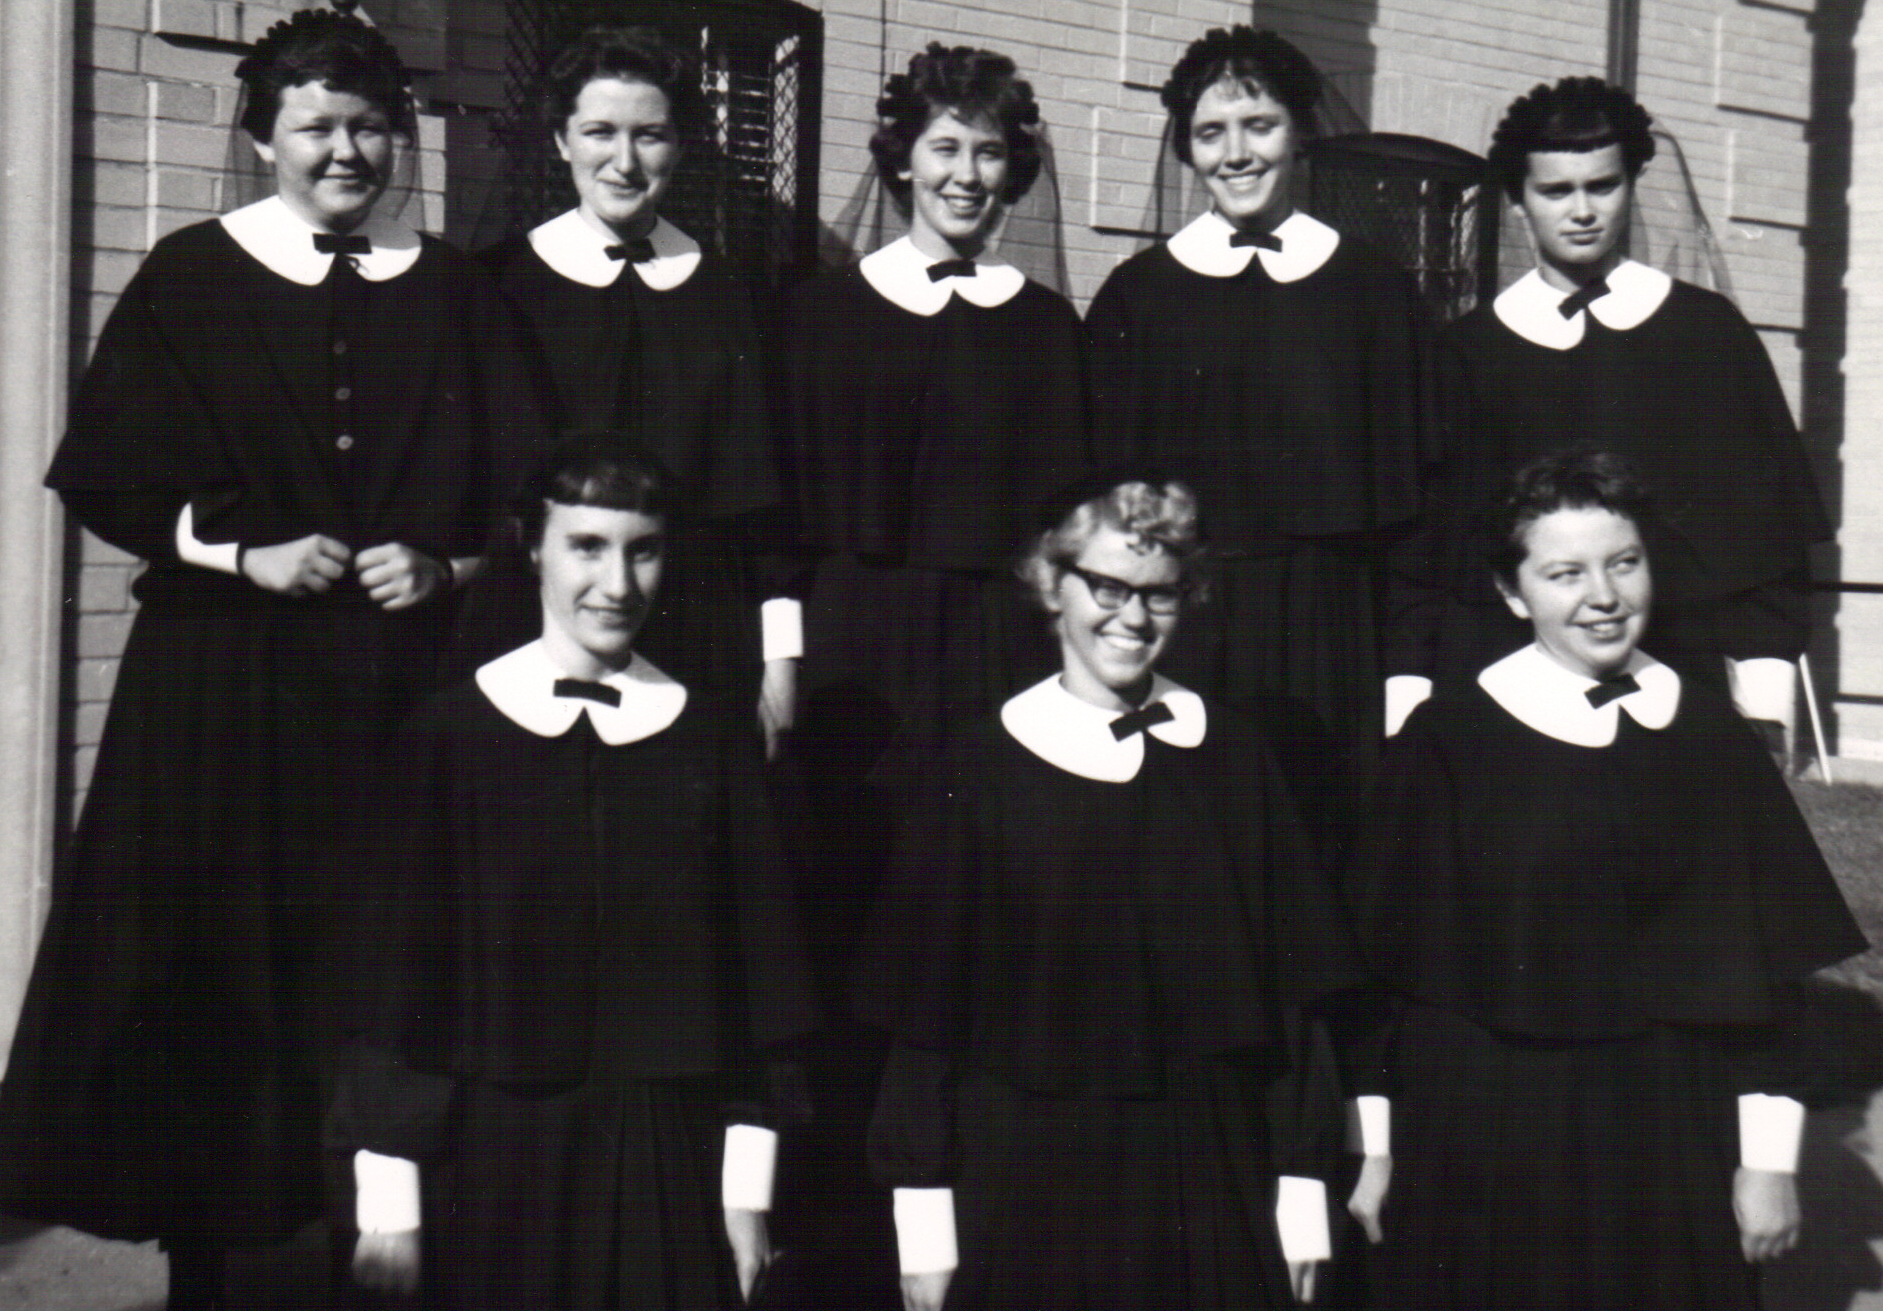 These young women were among the 31 women who entered the Sisters of Mercy community in Detroit in 1960. In their first year of studies, they were known as postulants. Of those 31 postulants, ten remain, sisters, today. Sister Mary Ellen Howard, a one-time CEO of former Mercy hospitals in Muskegon and Grayling and the former director of Detroit's Cabrini Clinic, is pictured top row, second from left. Also in the top row is Sister Marianne Bennett, far right, and Sister Margaret Platte, second from right.